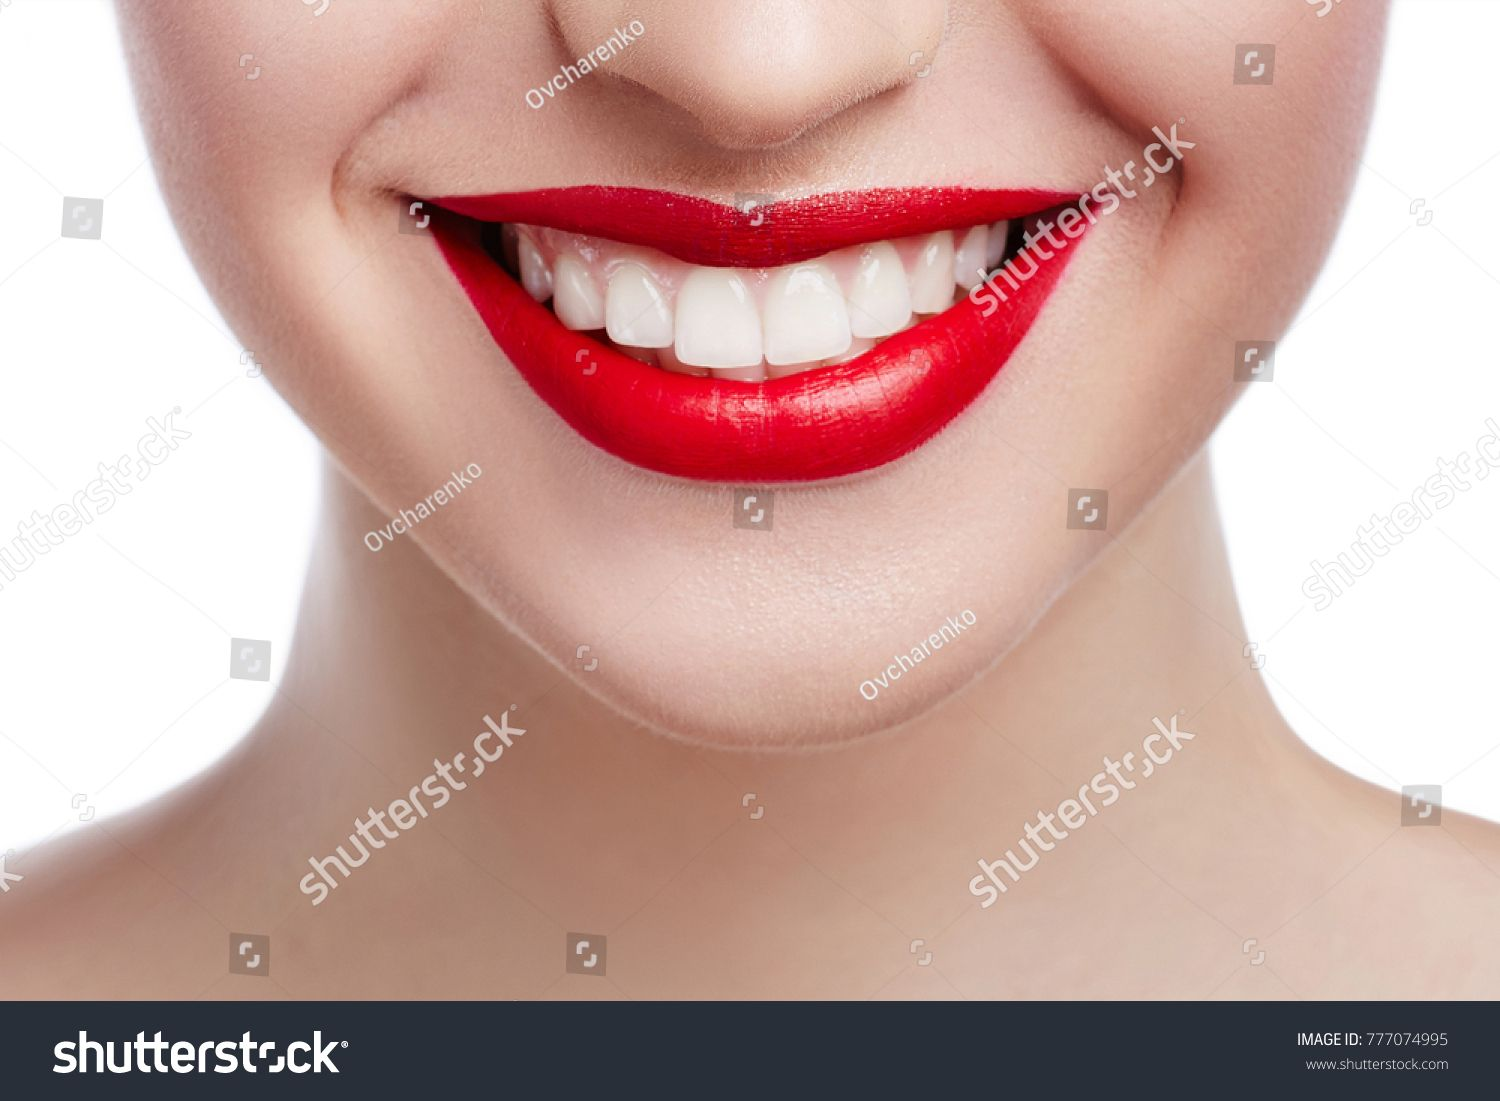 Healthy White Smile Close Up Beauty Woman With Perfect Smile